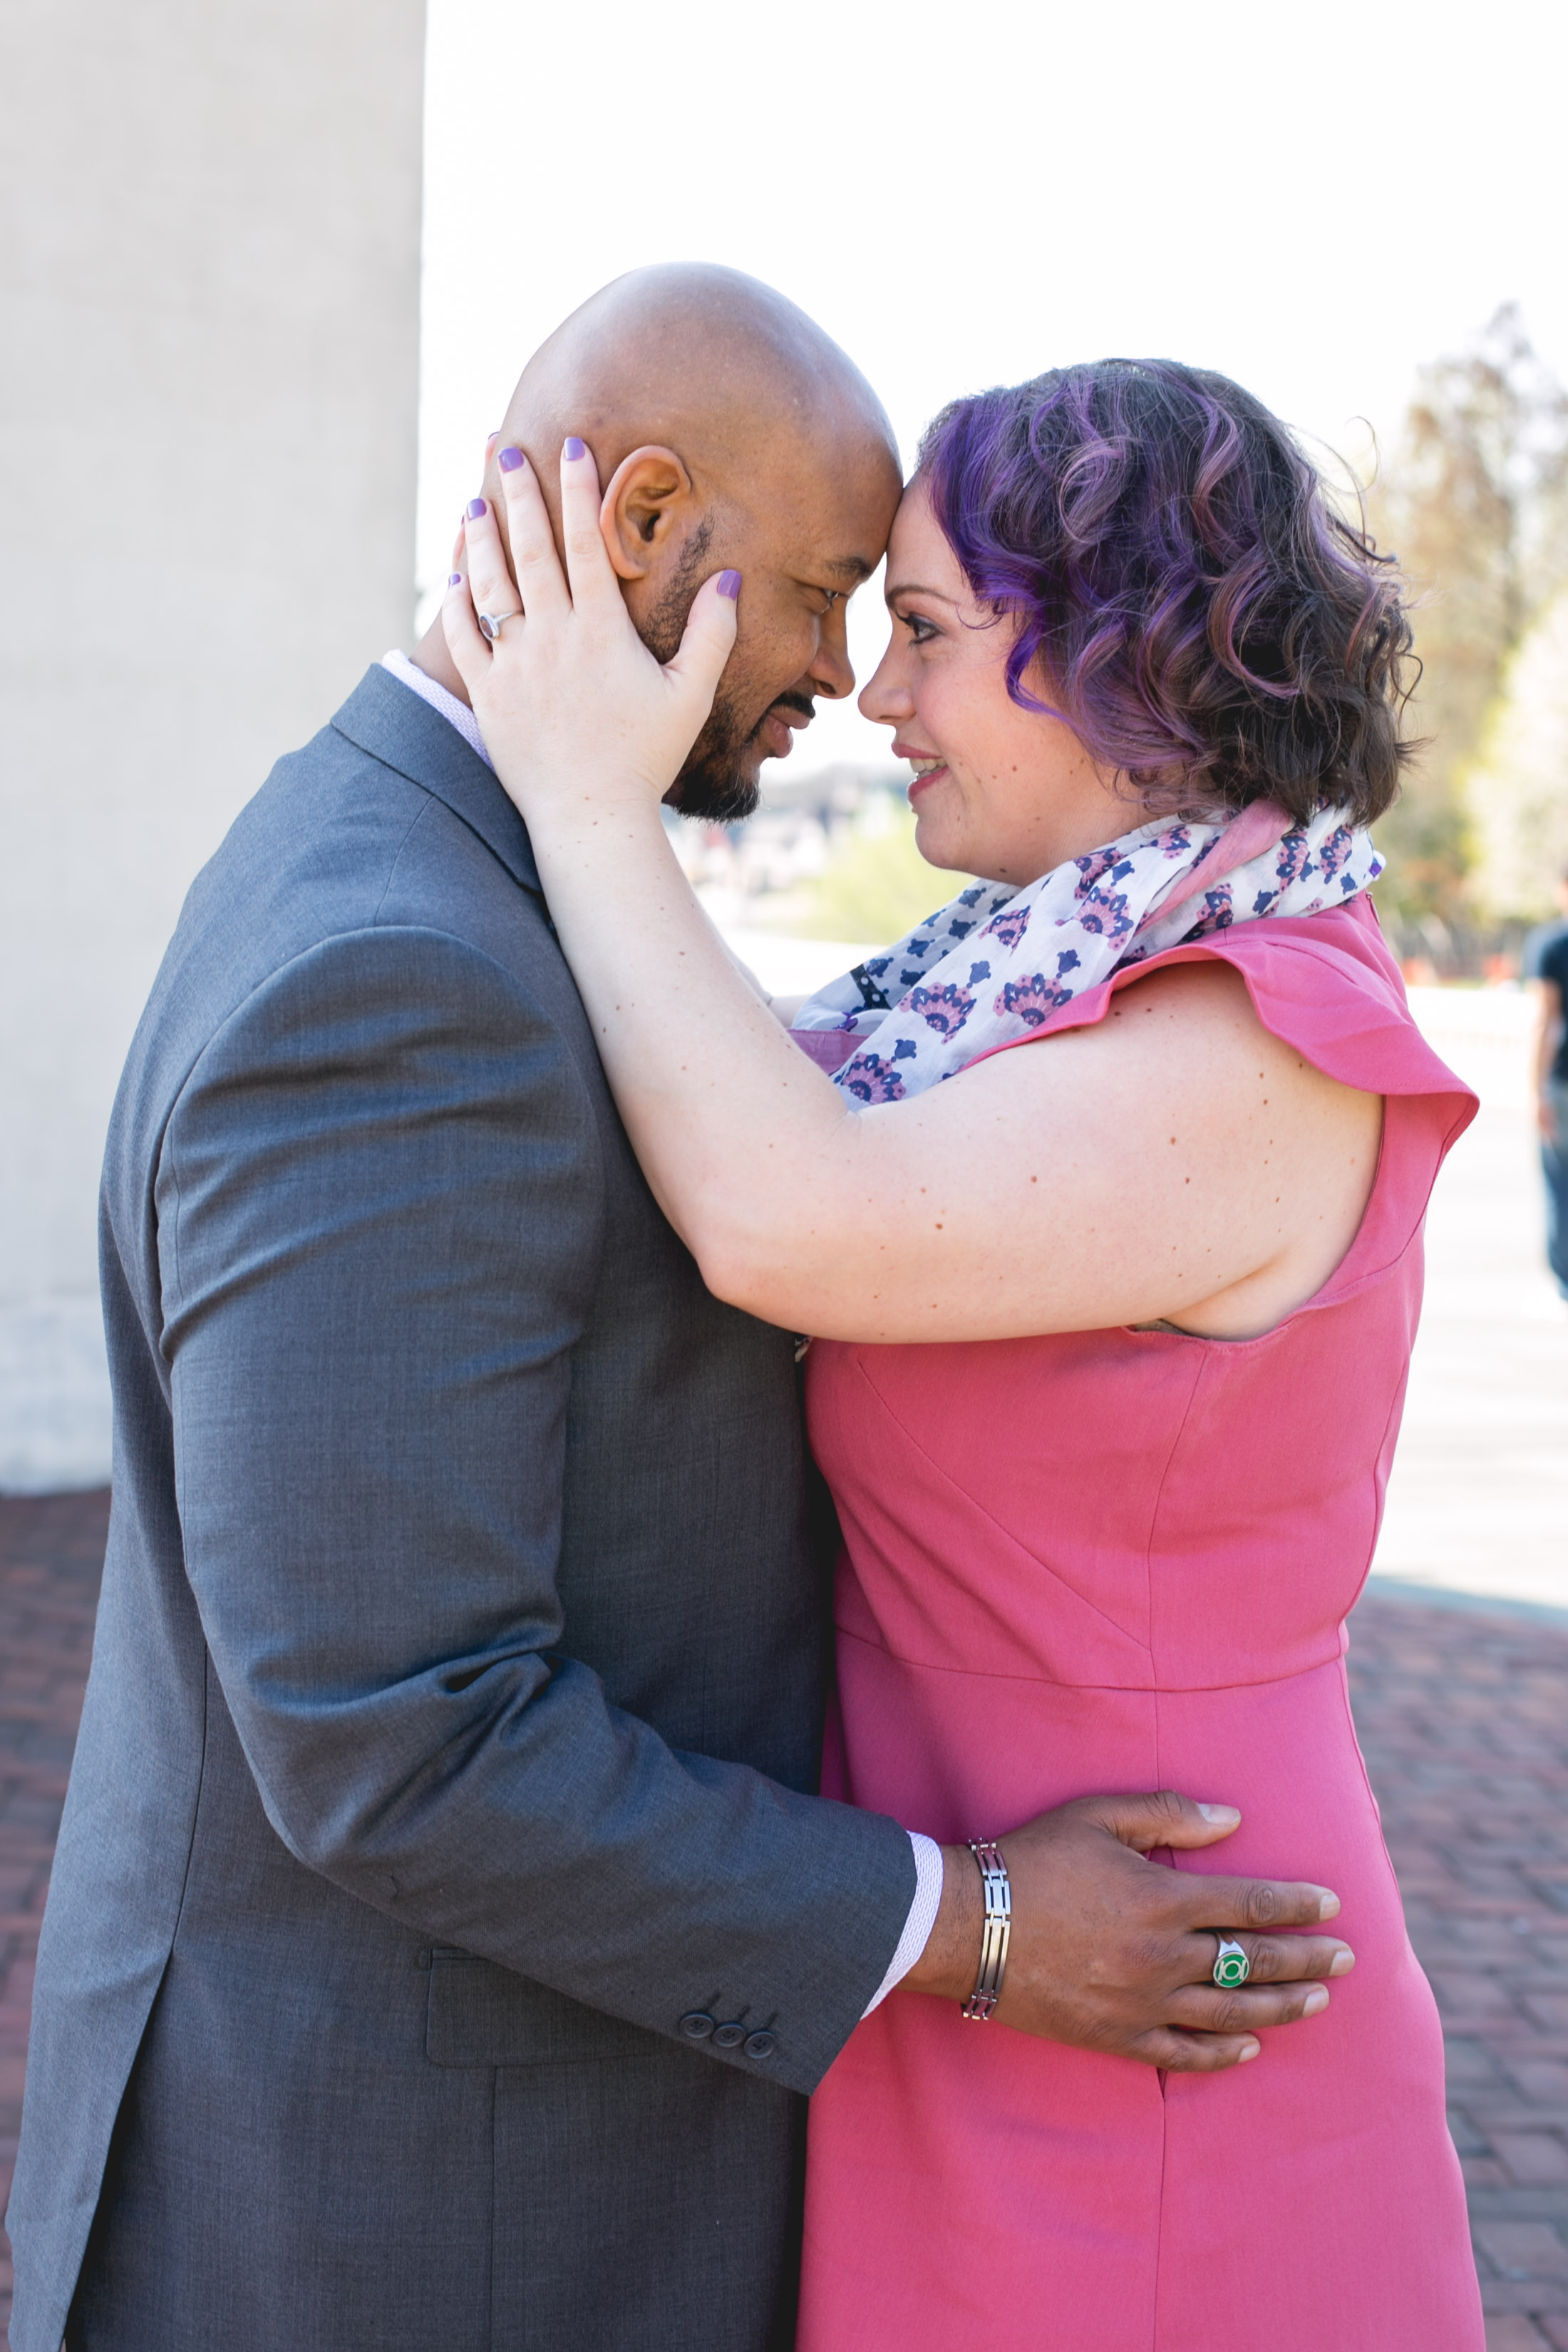 Interacial Philly Engagement Shoot 2